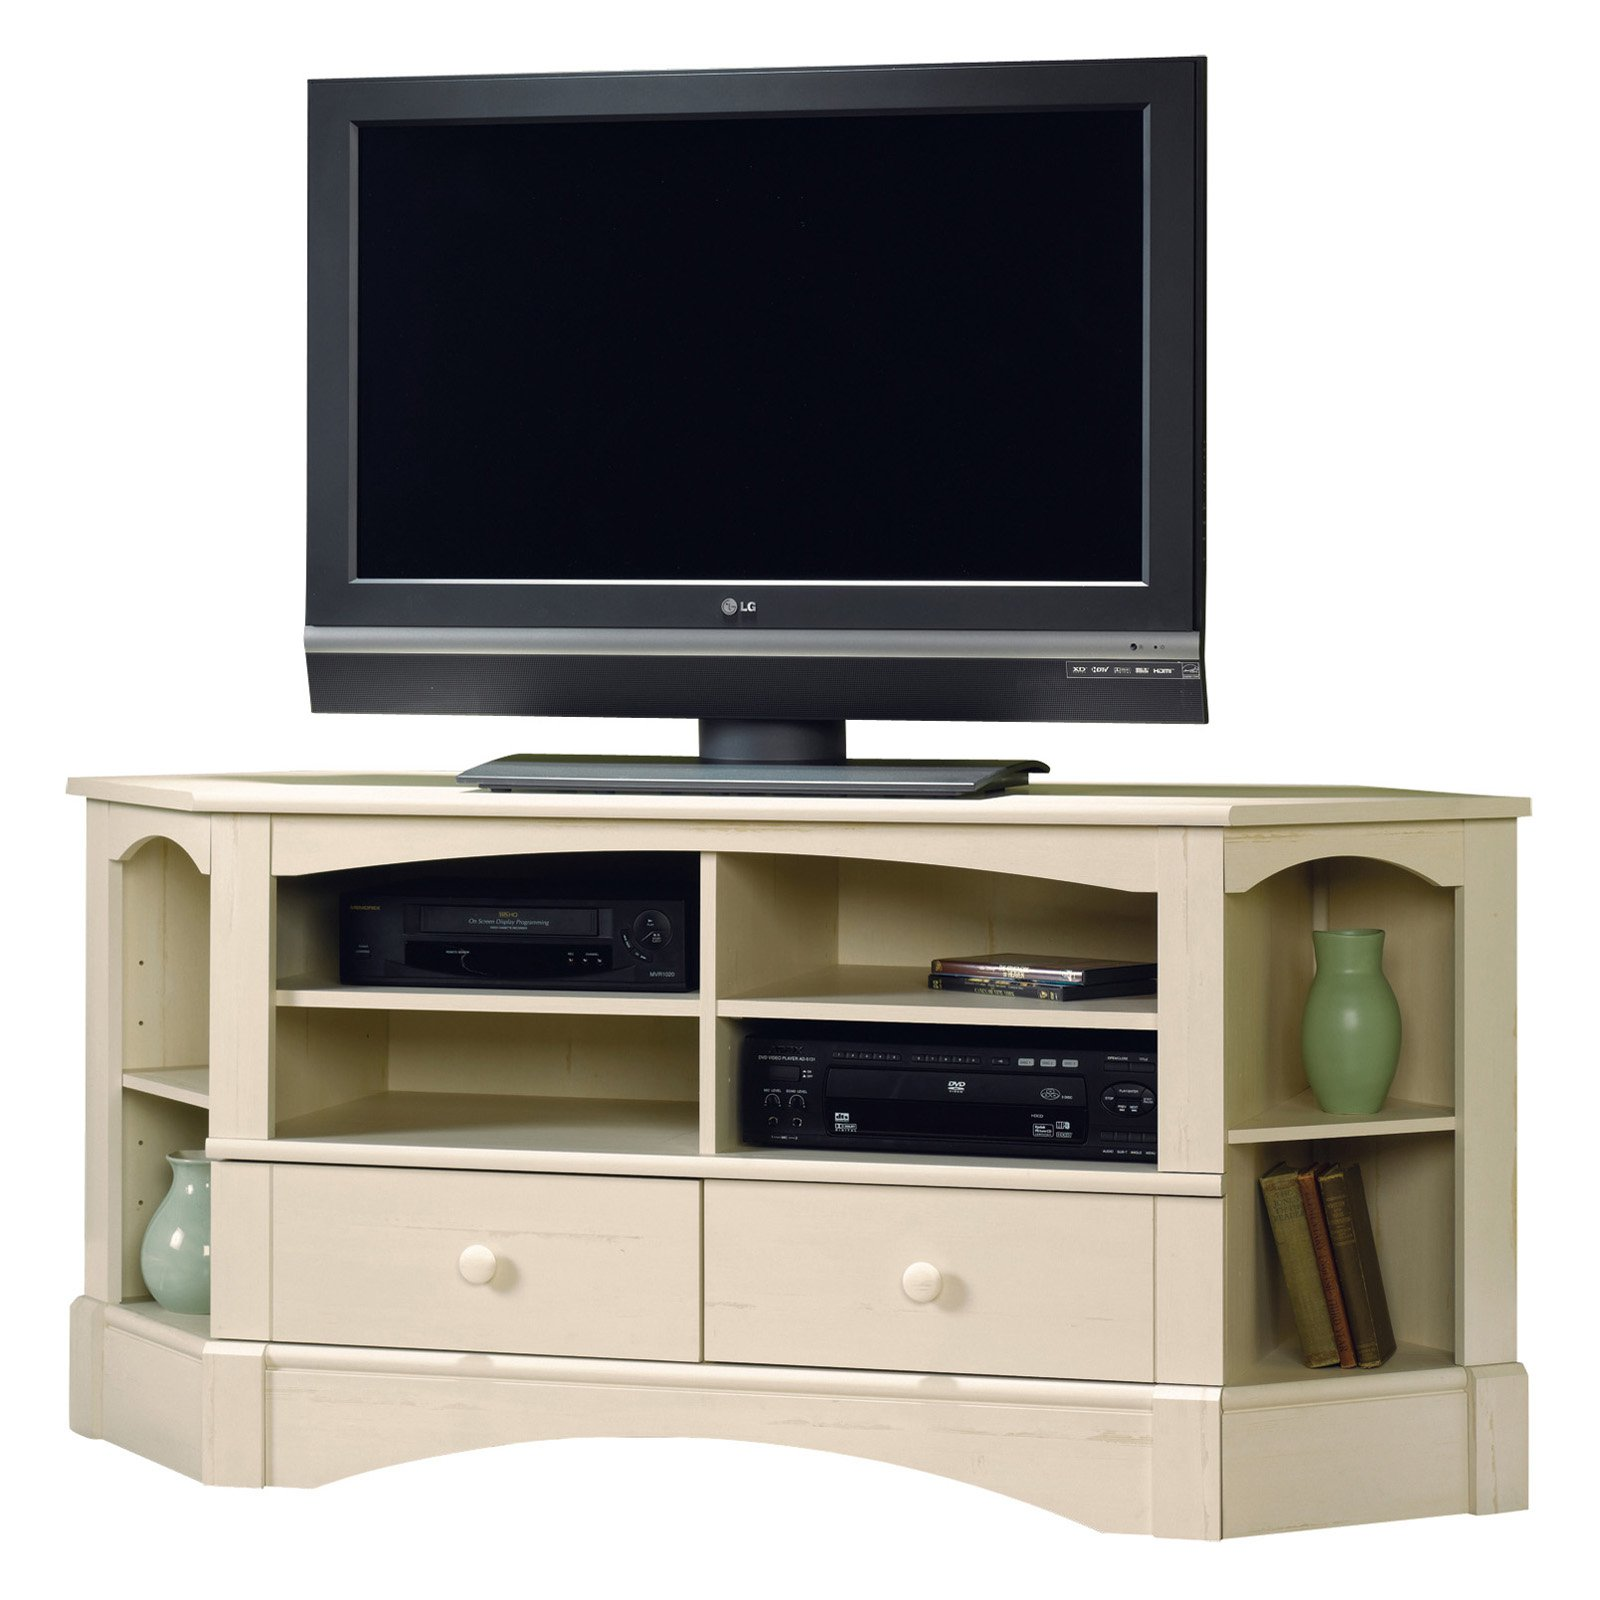 Sauders Tv Stands | Saunders Tv Stand | Sauder Tv Stands